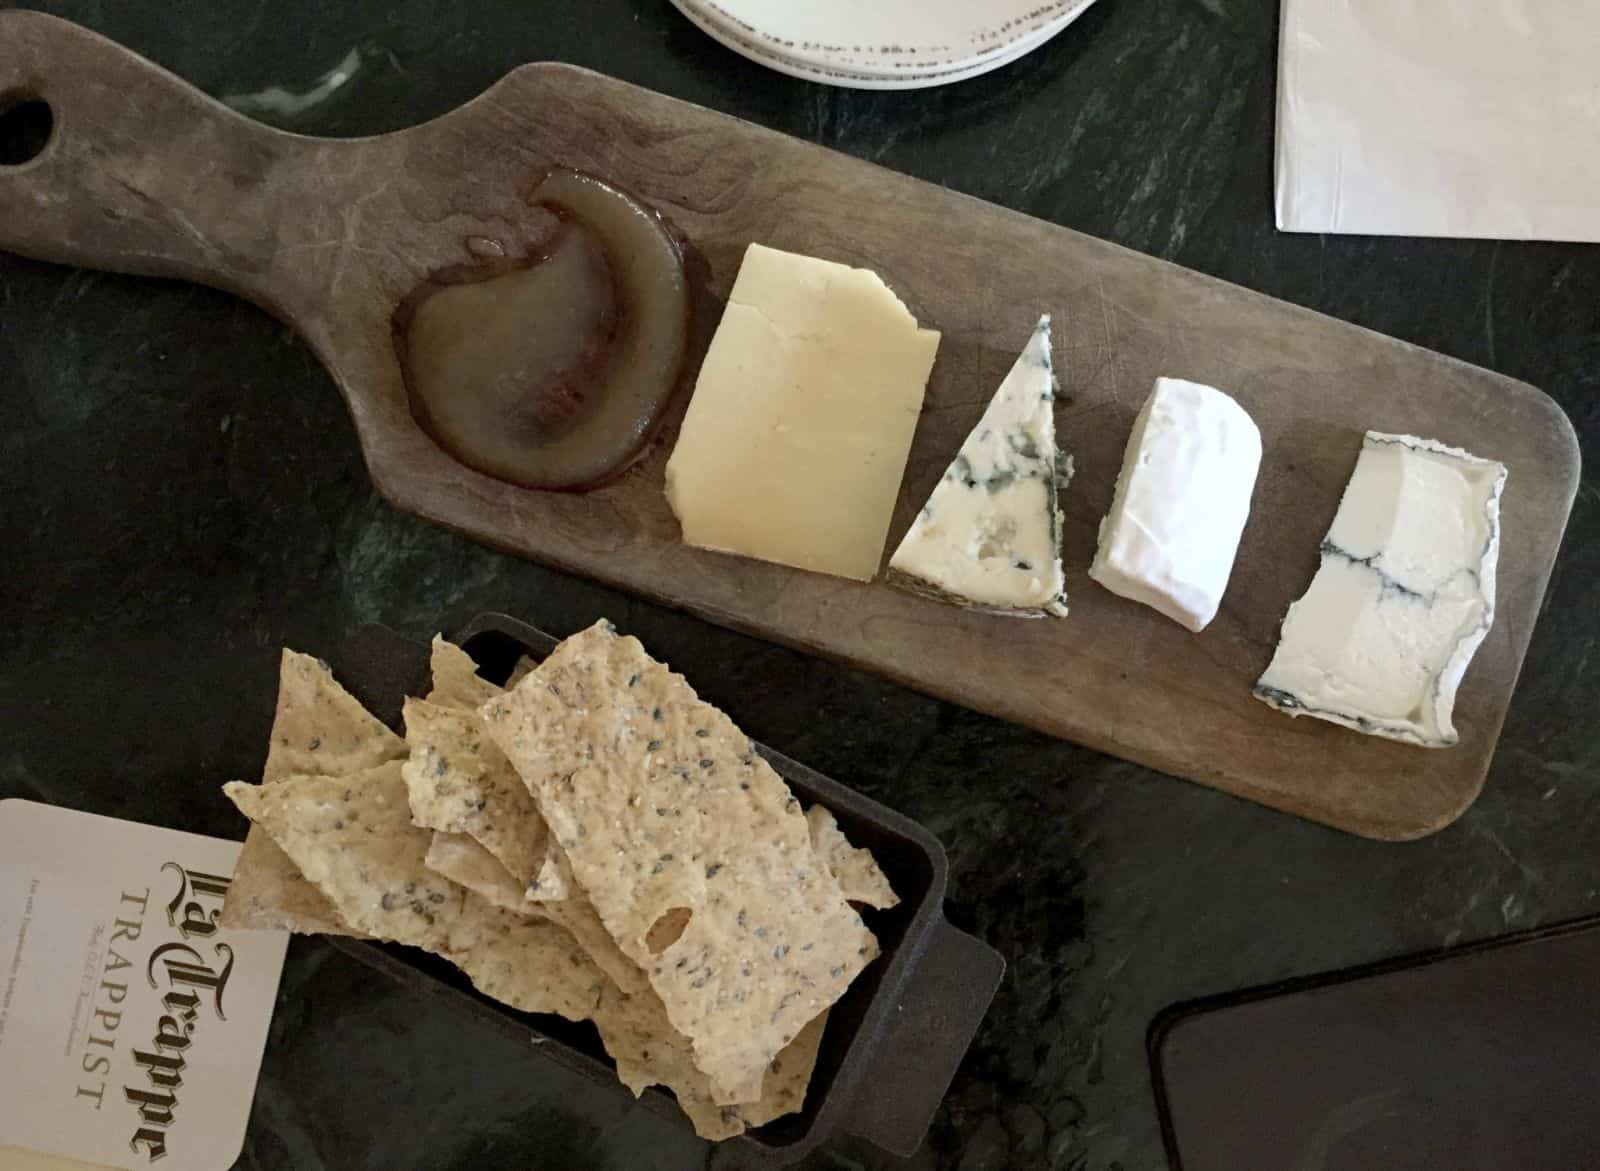 The Farmhouse cheeseboard